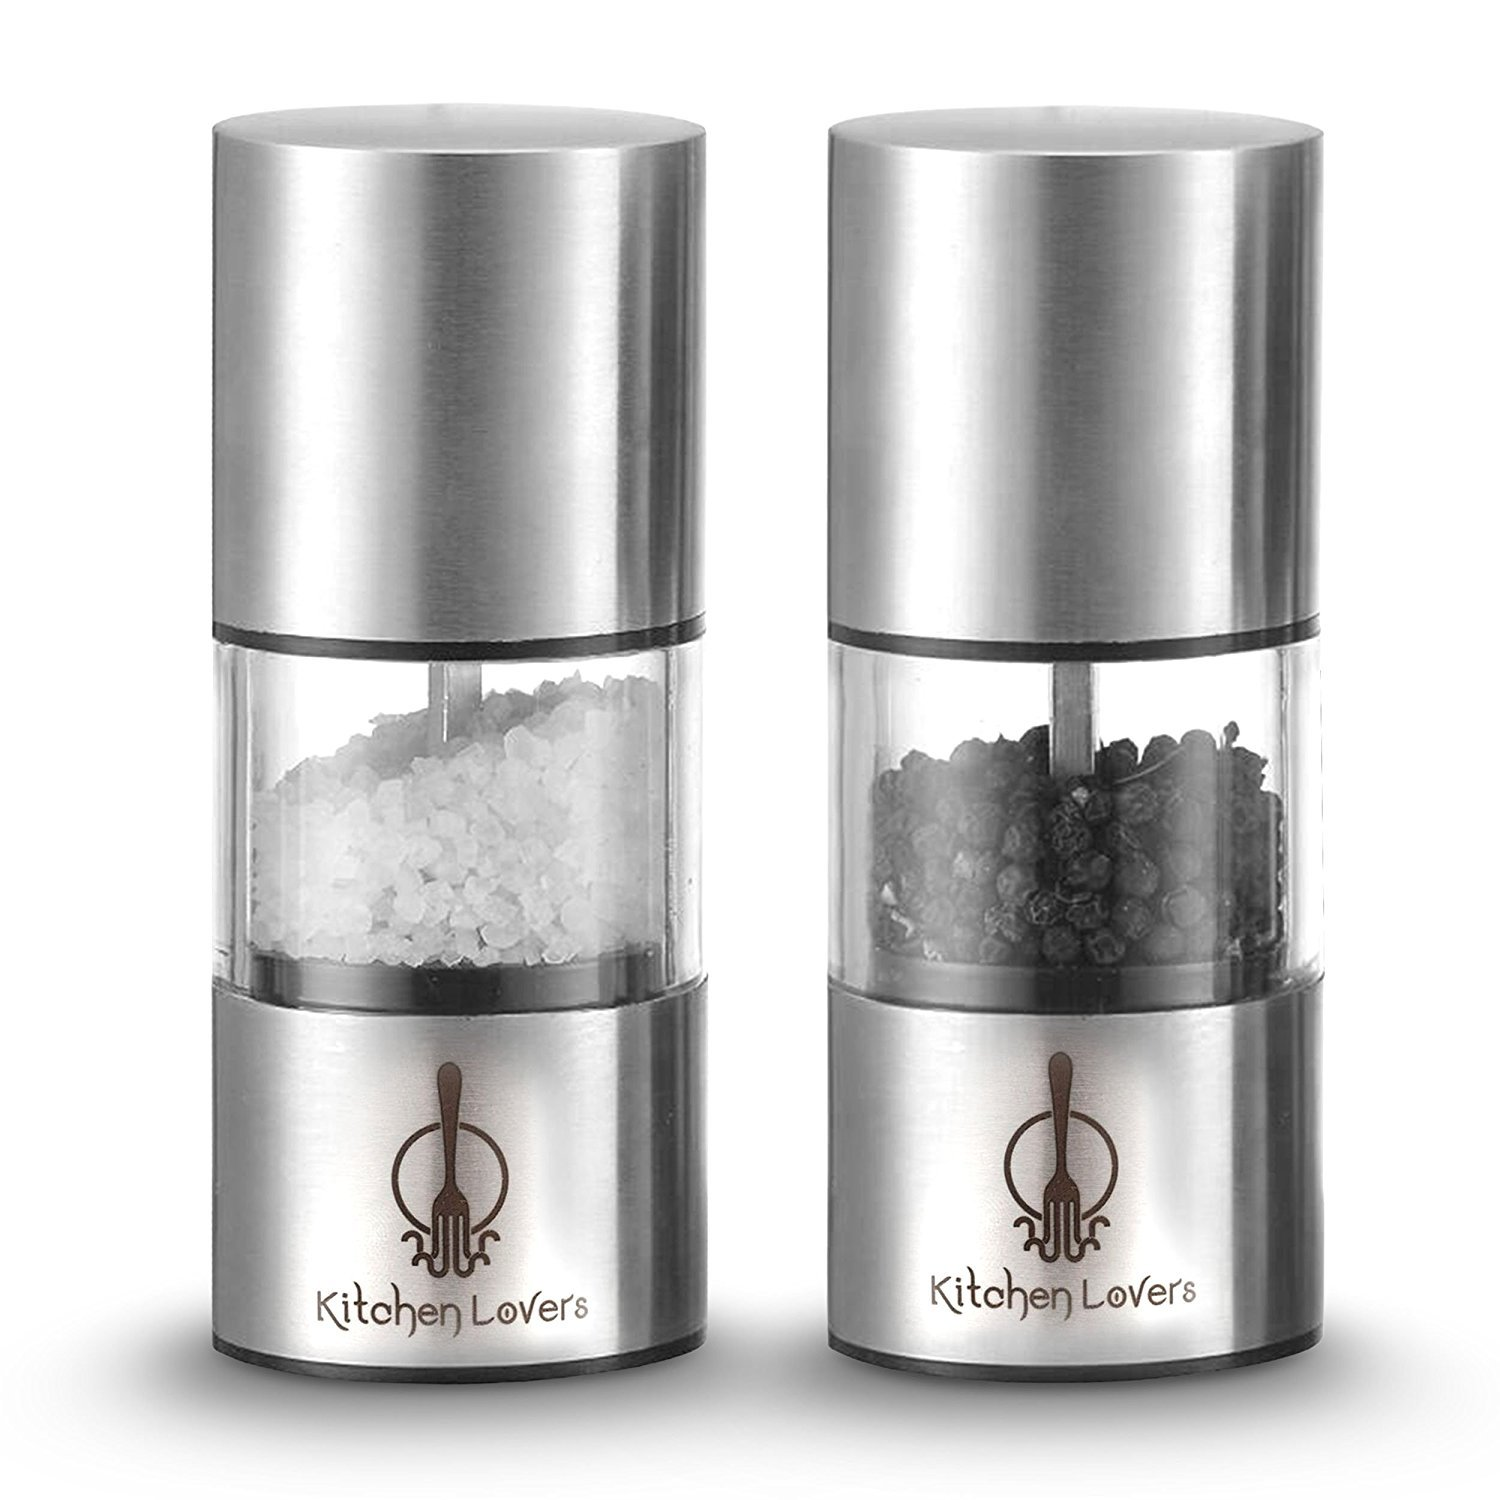 Kitchen Lovers Salt and Pepper Mill Set with Adjustable Grinder Settings